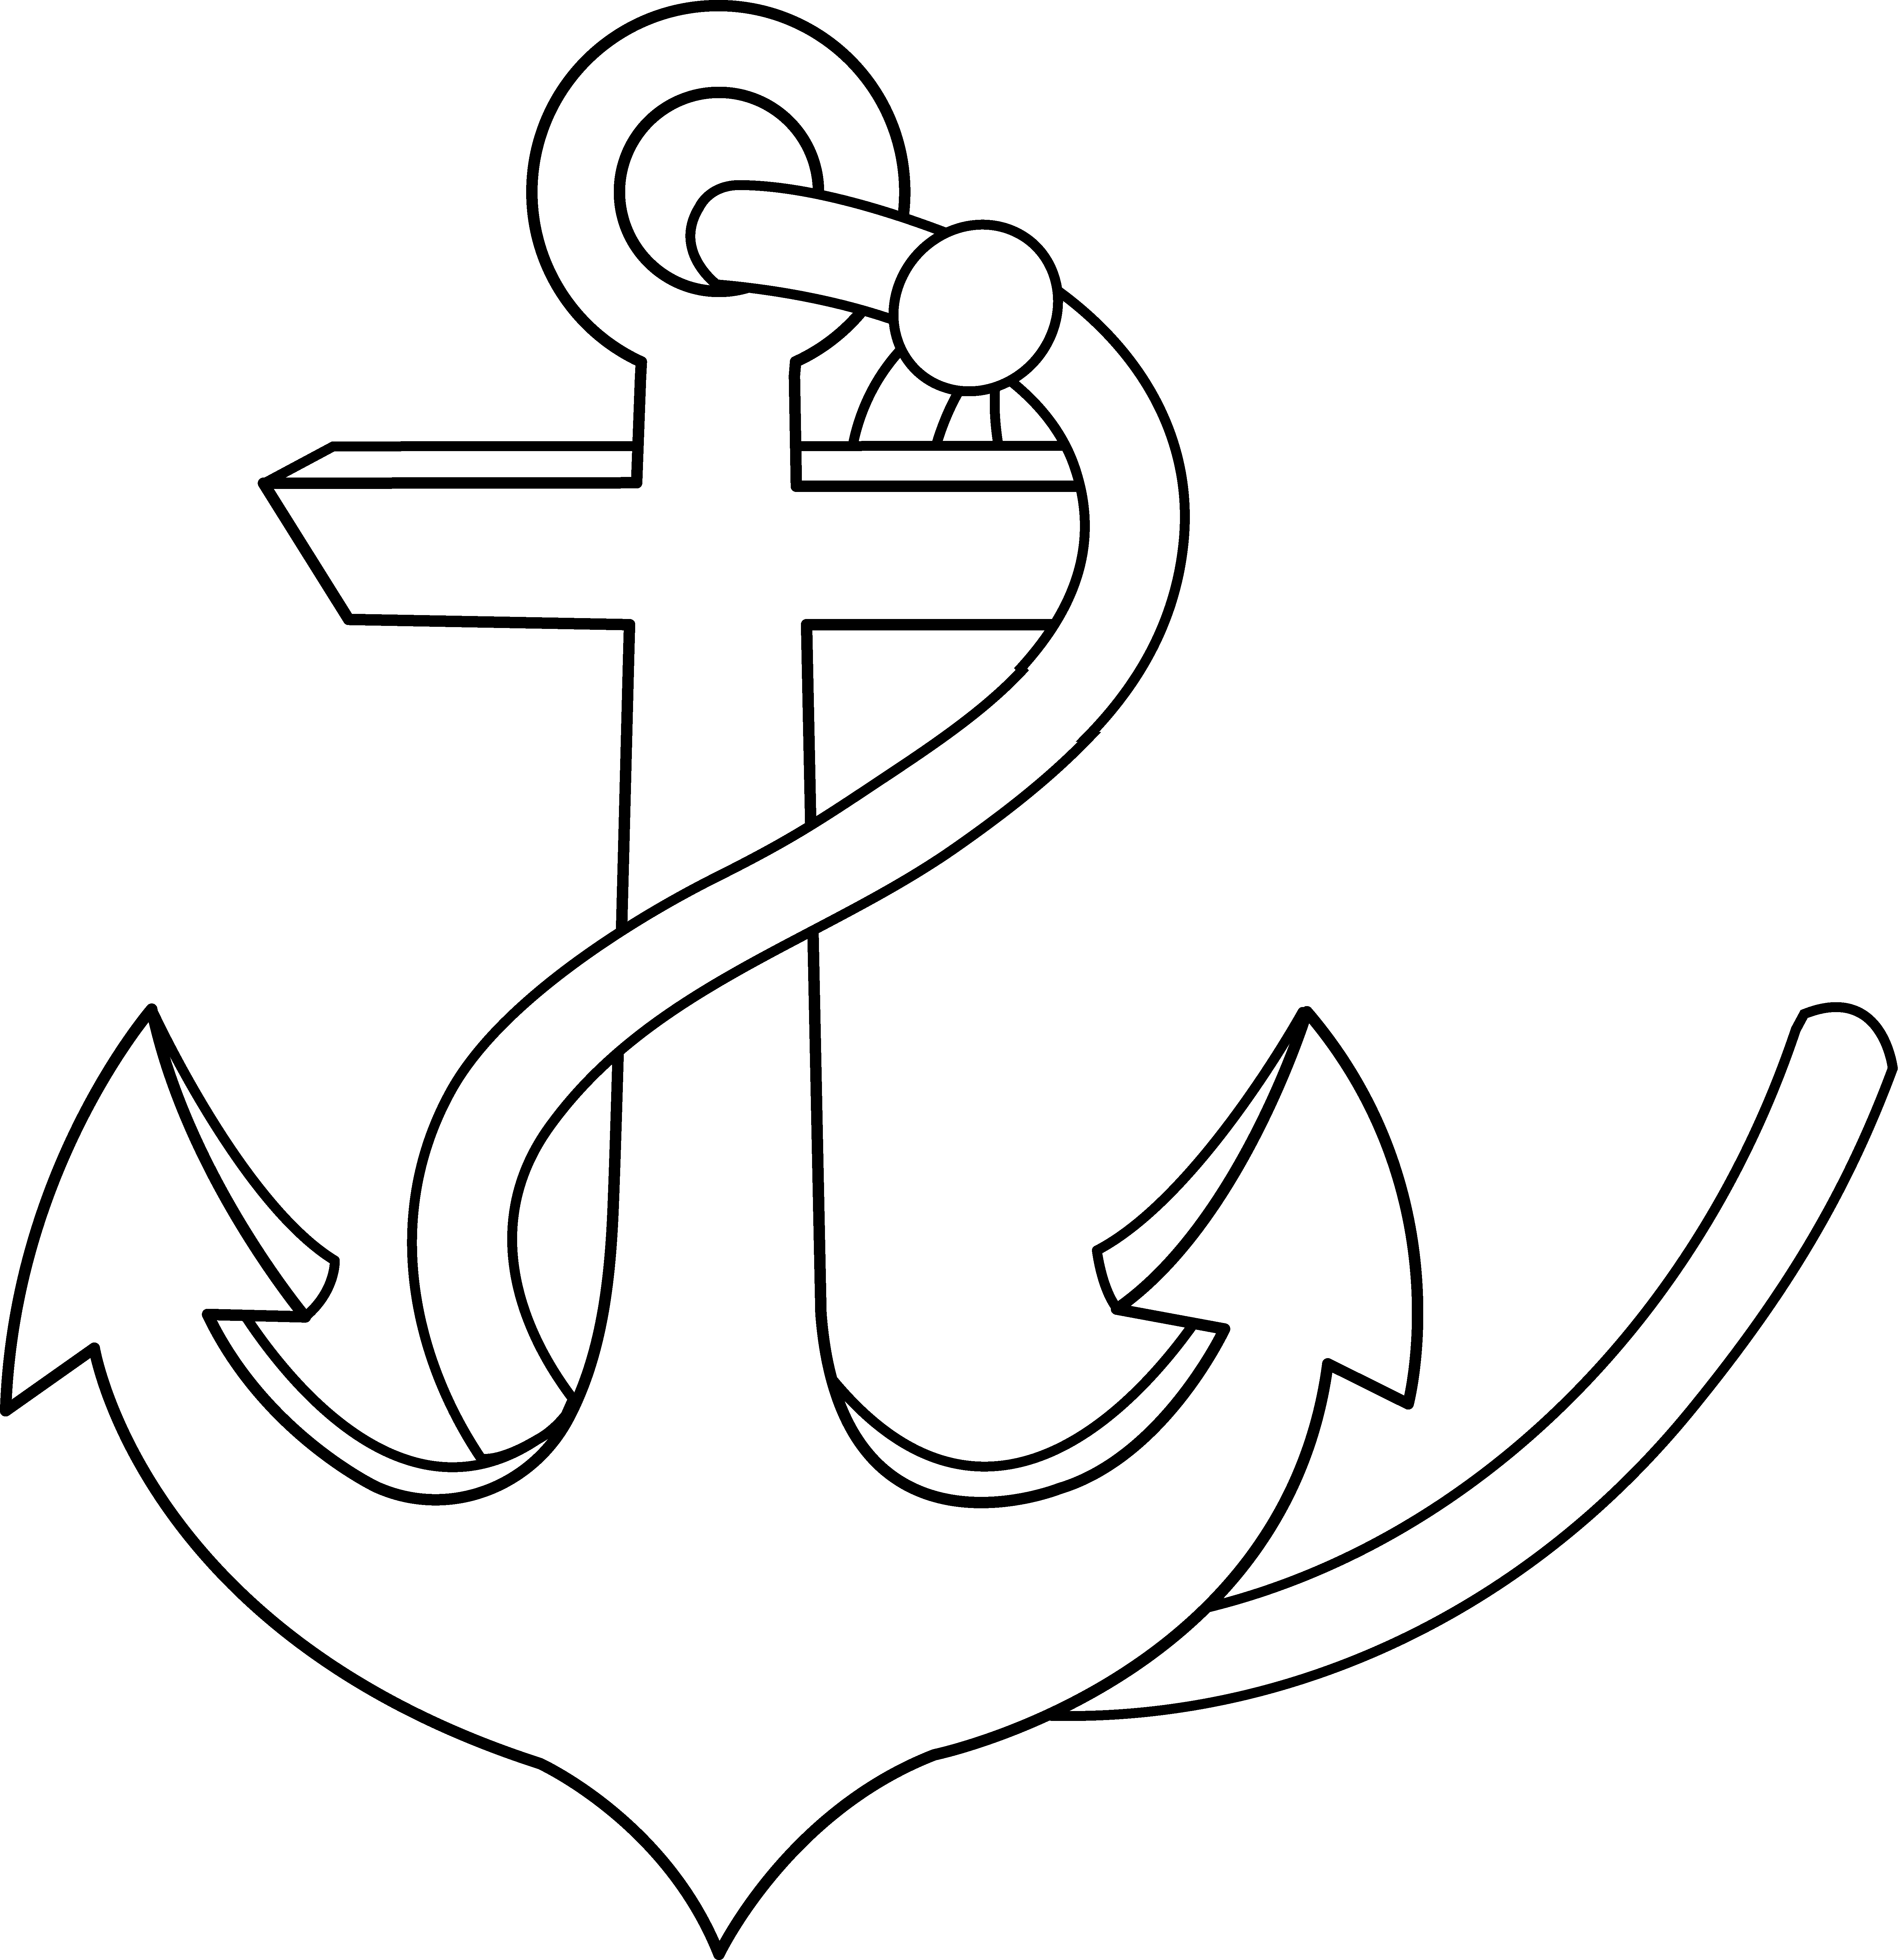 Clipart boat symbol. Anchor line art free